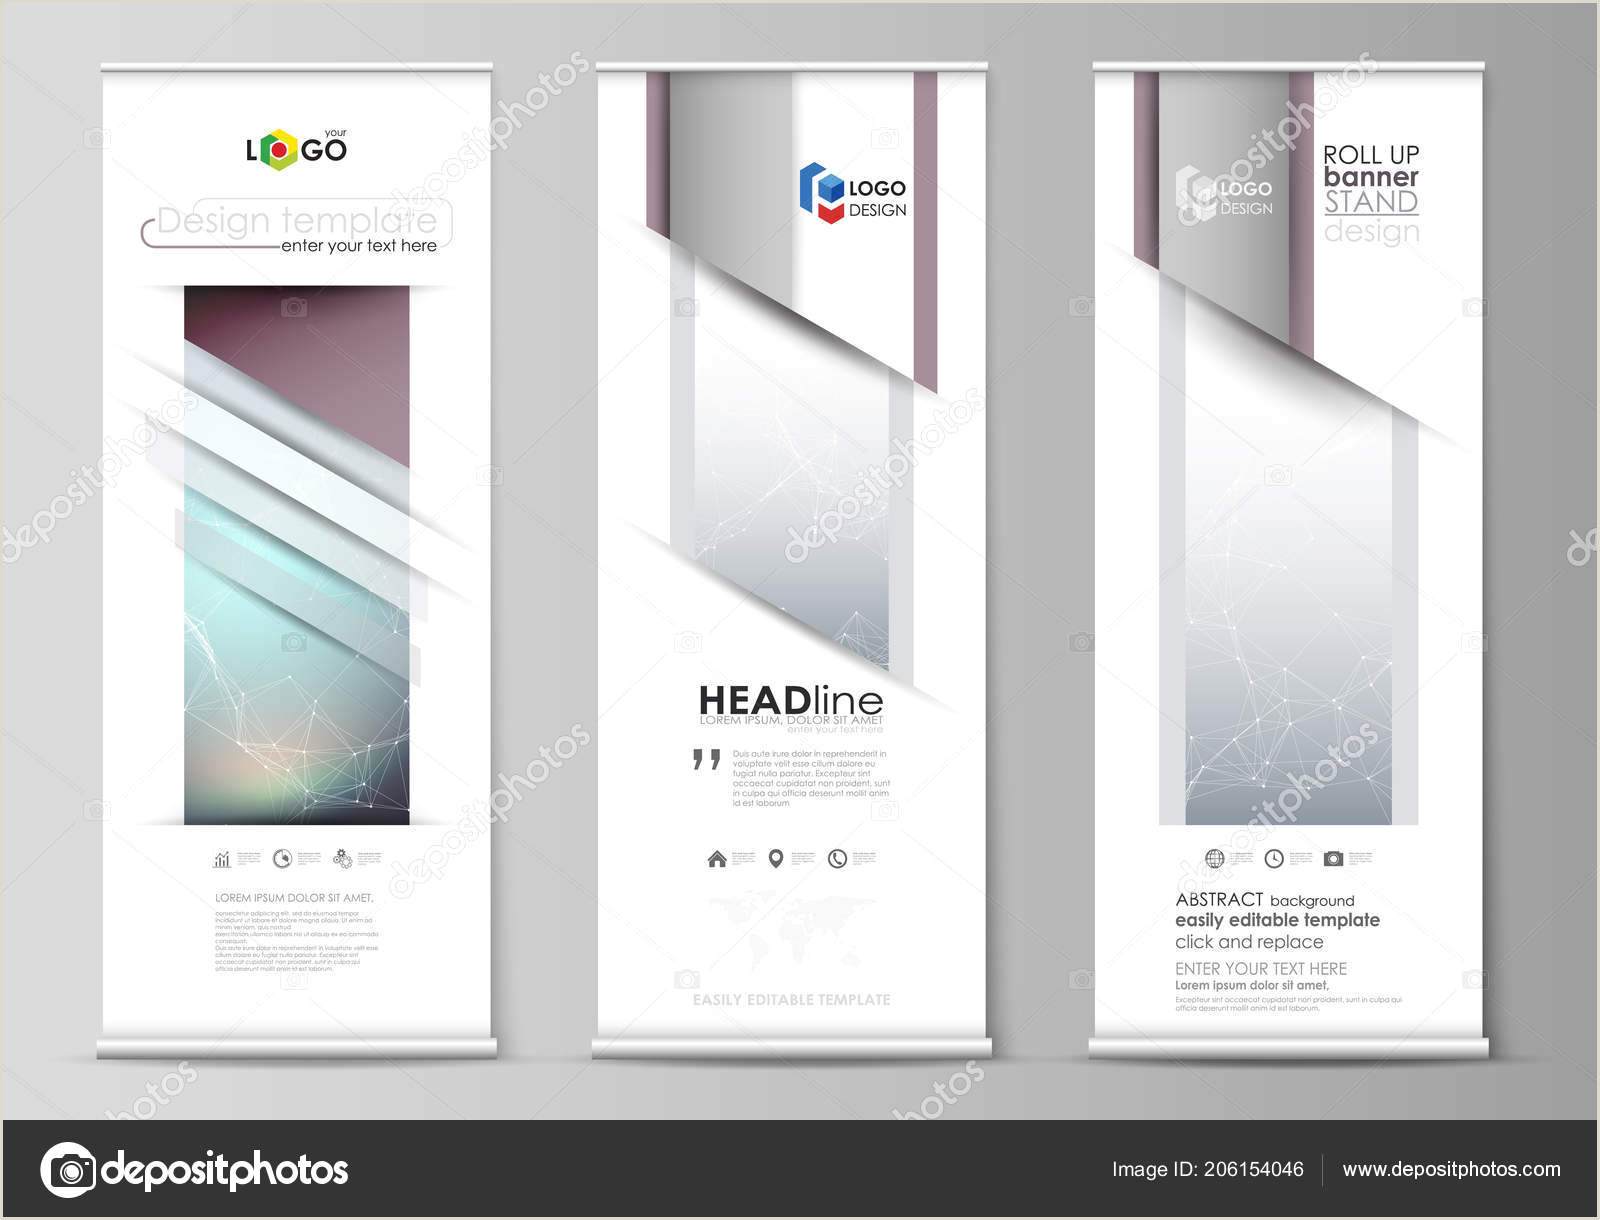 Roll Up Poster Display Roll Up Banner Stands Abstract Geometric Design Templates Vertical Vector Flyers Flag Layouts Pounds Lines And Dots Big Data Visualization In